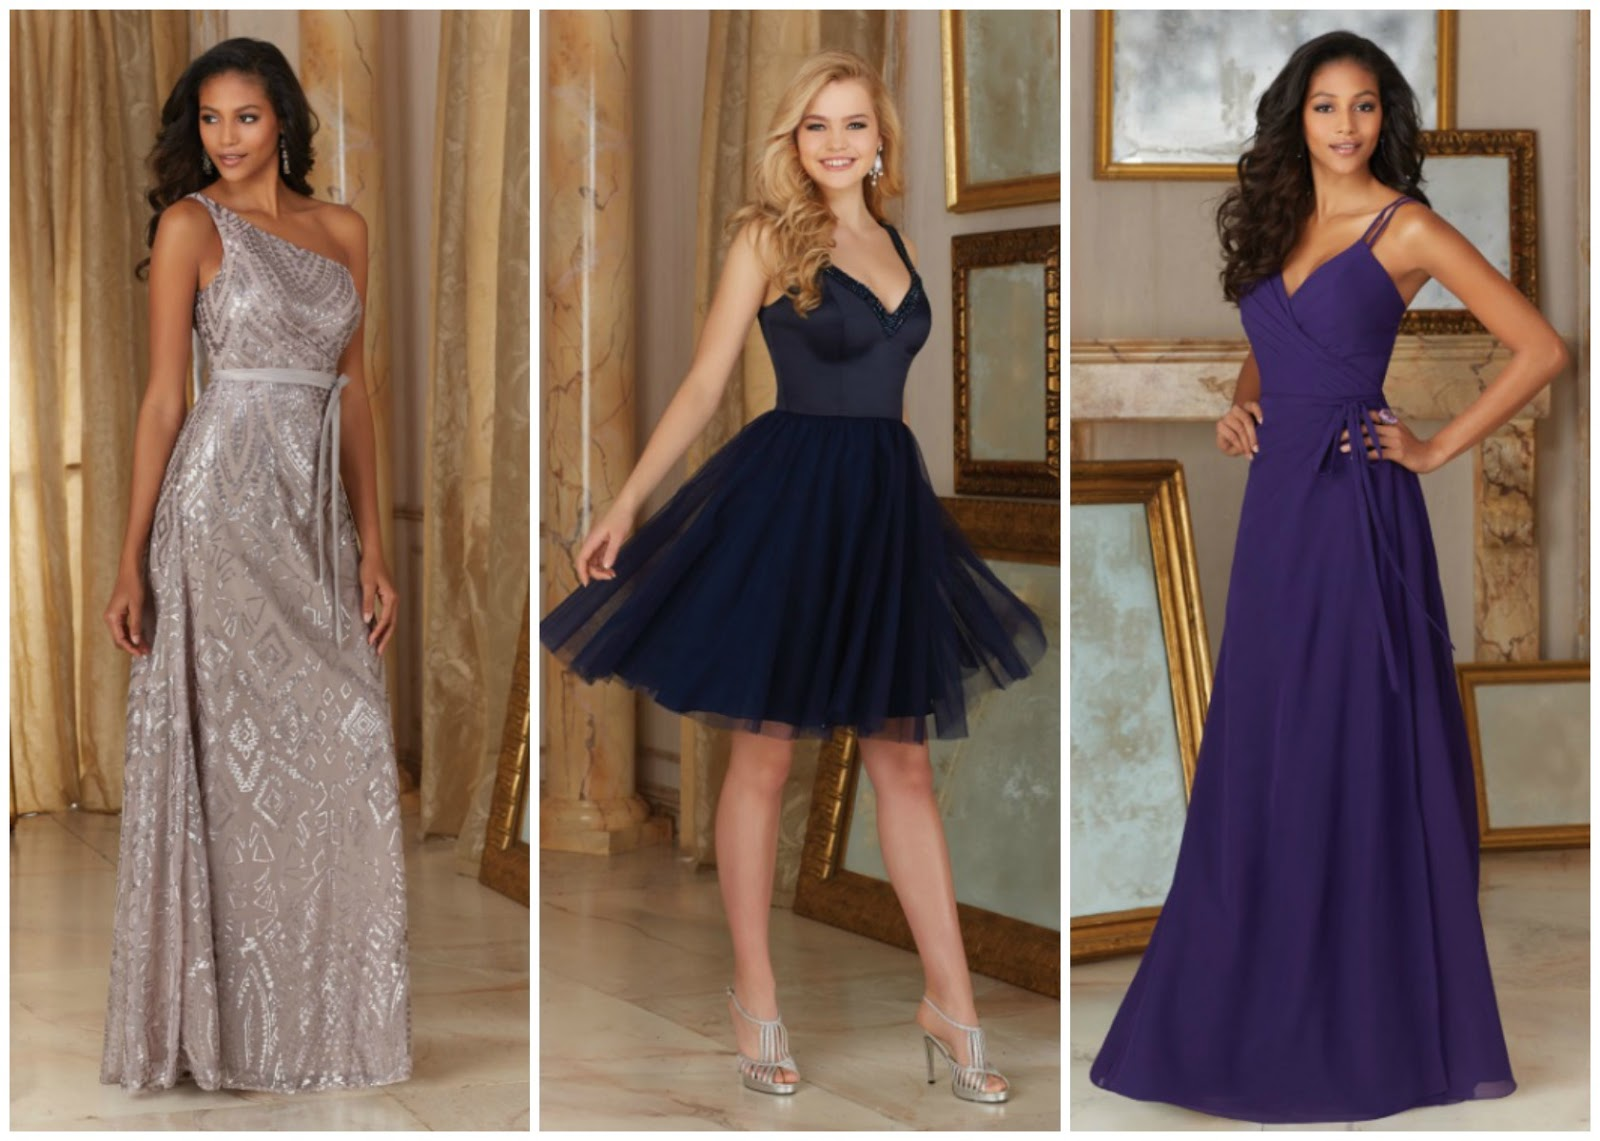 Brides of america online store the new fall 2016 bridesmaid to find your dream wedding dress early in the planning process and once you accomplish that its time to find fashions for your lovely bridesmaids ombrellifo Image collections